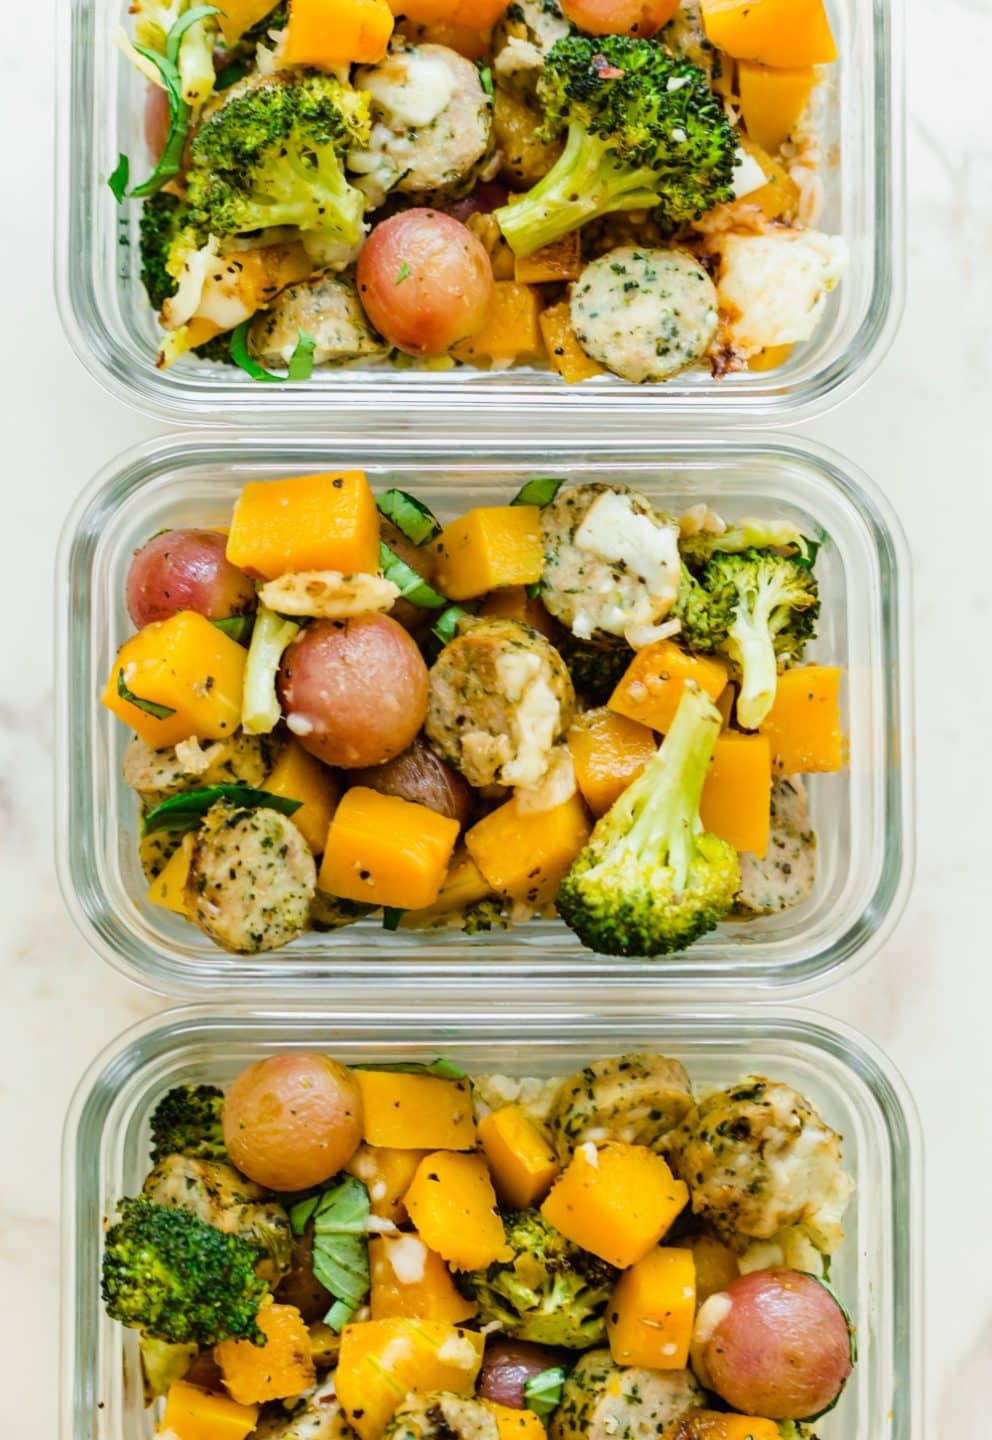 An overhead shot of glass meal prep containers filled with roasted veggies.